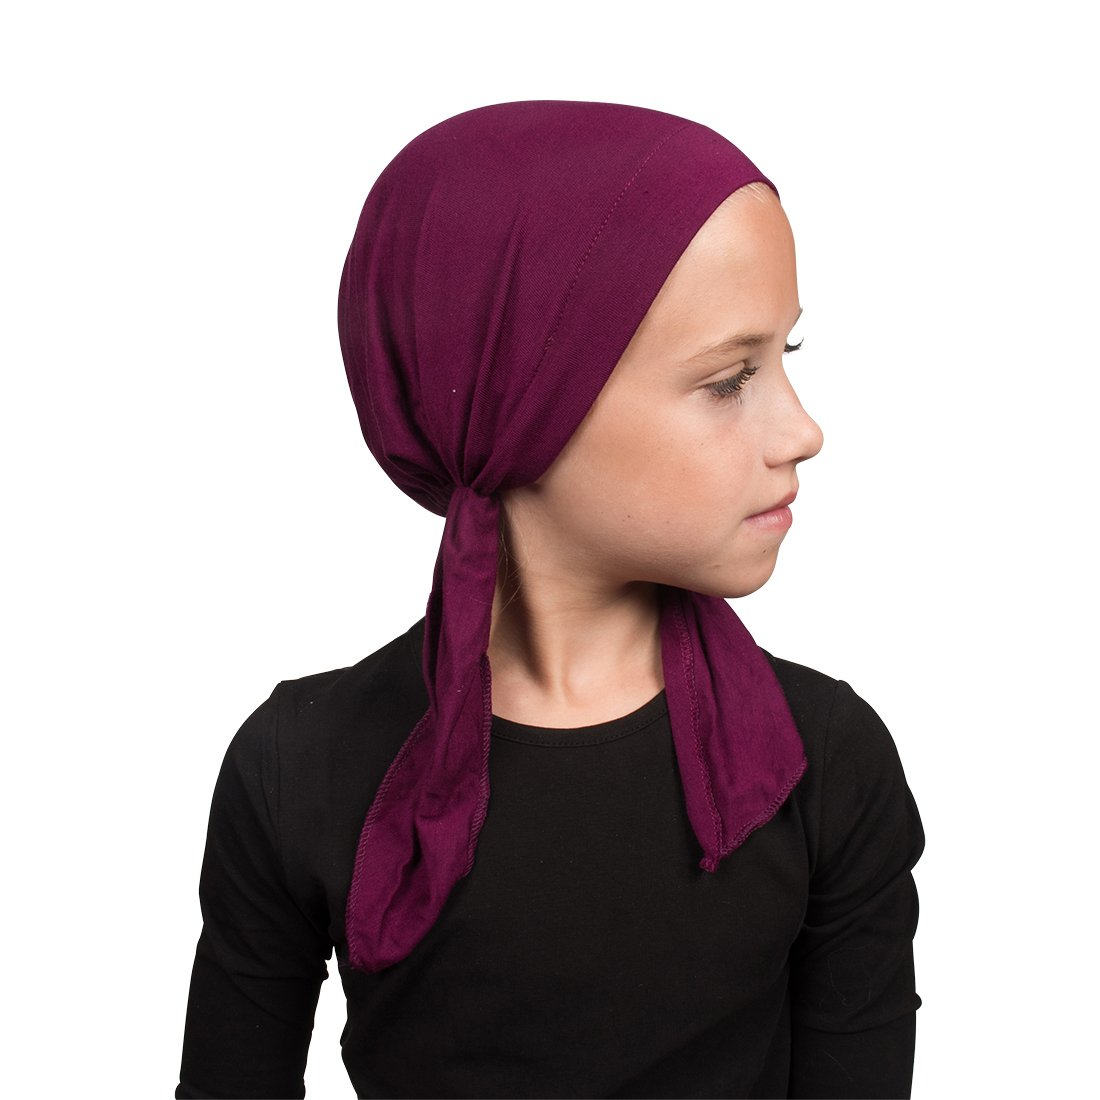 Purple Viscose Kids Chemo Cap Pretied for Girls Soft Cancer Scarf